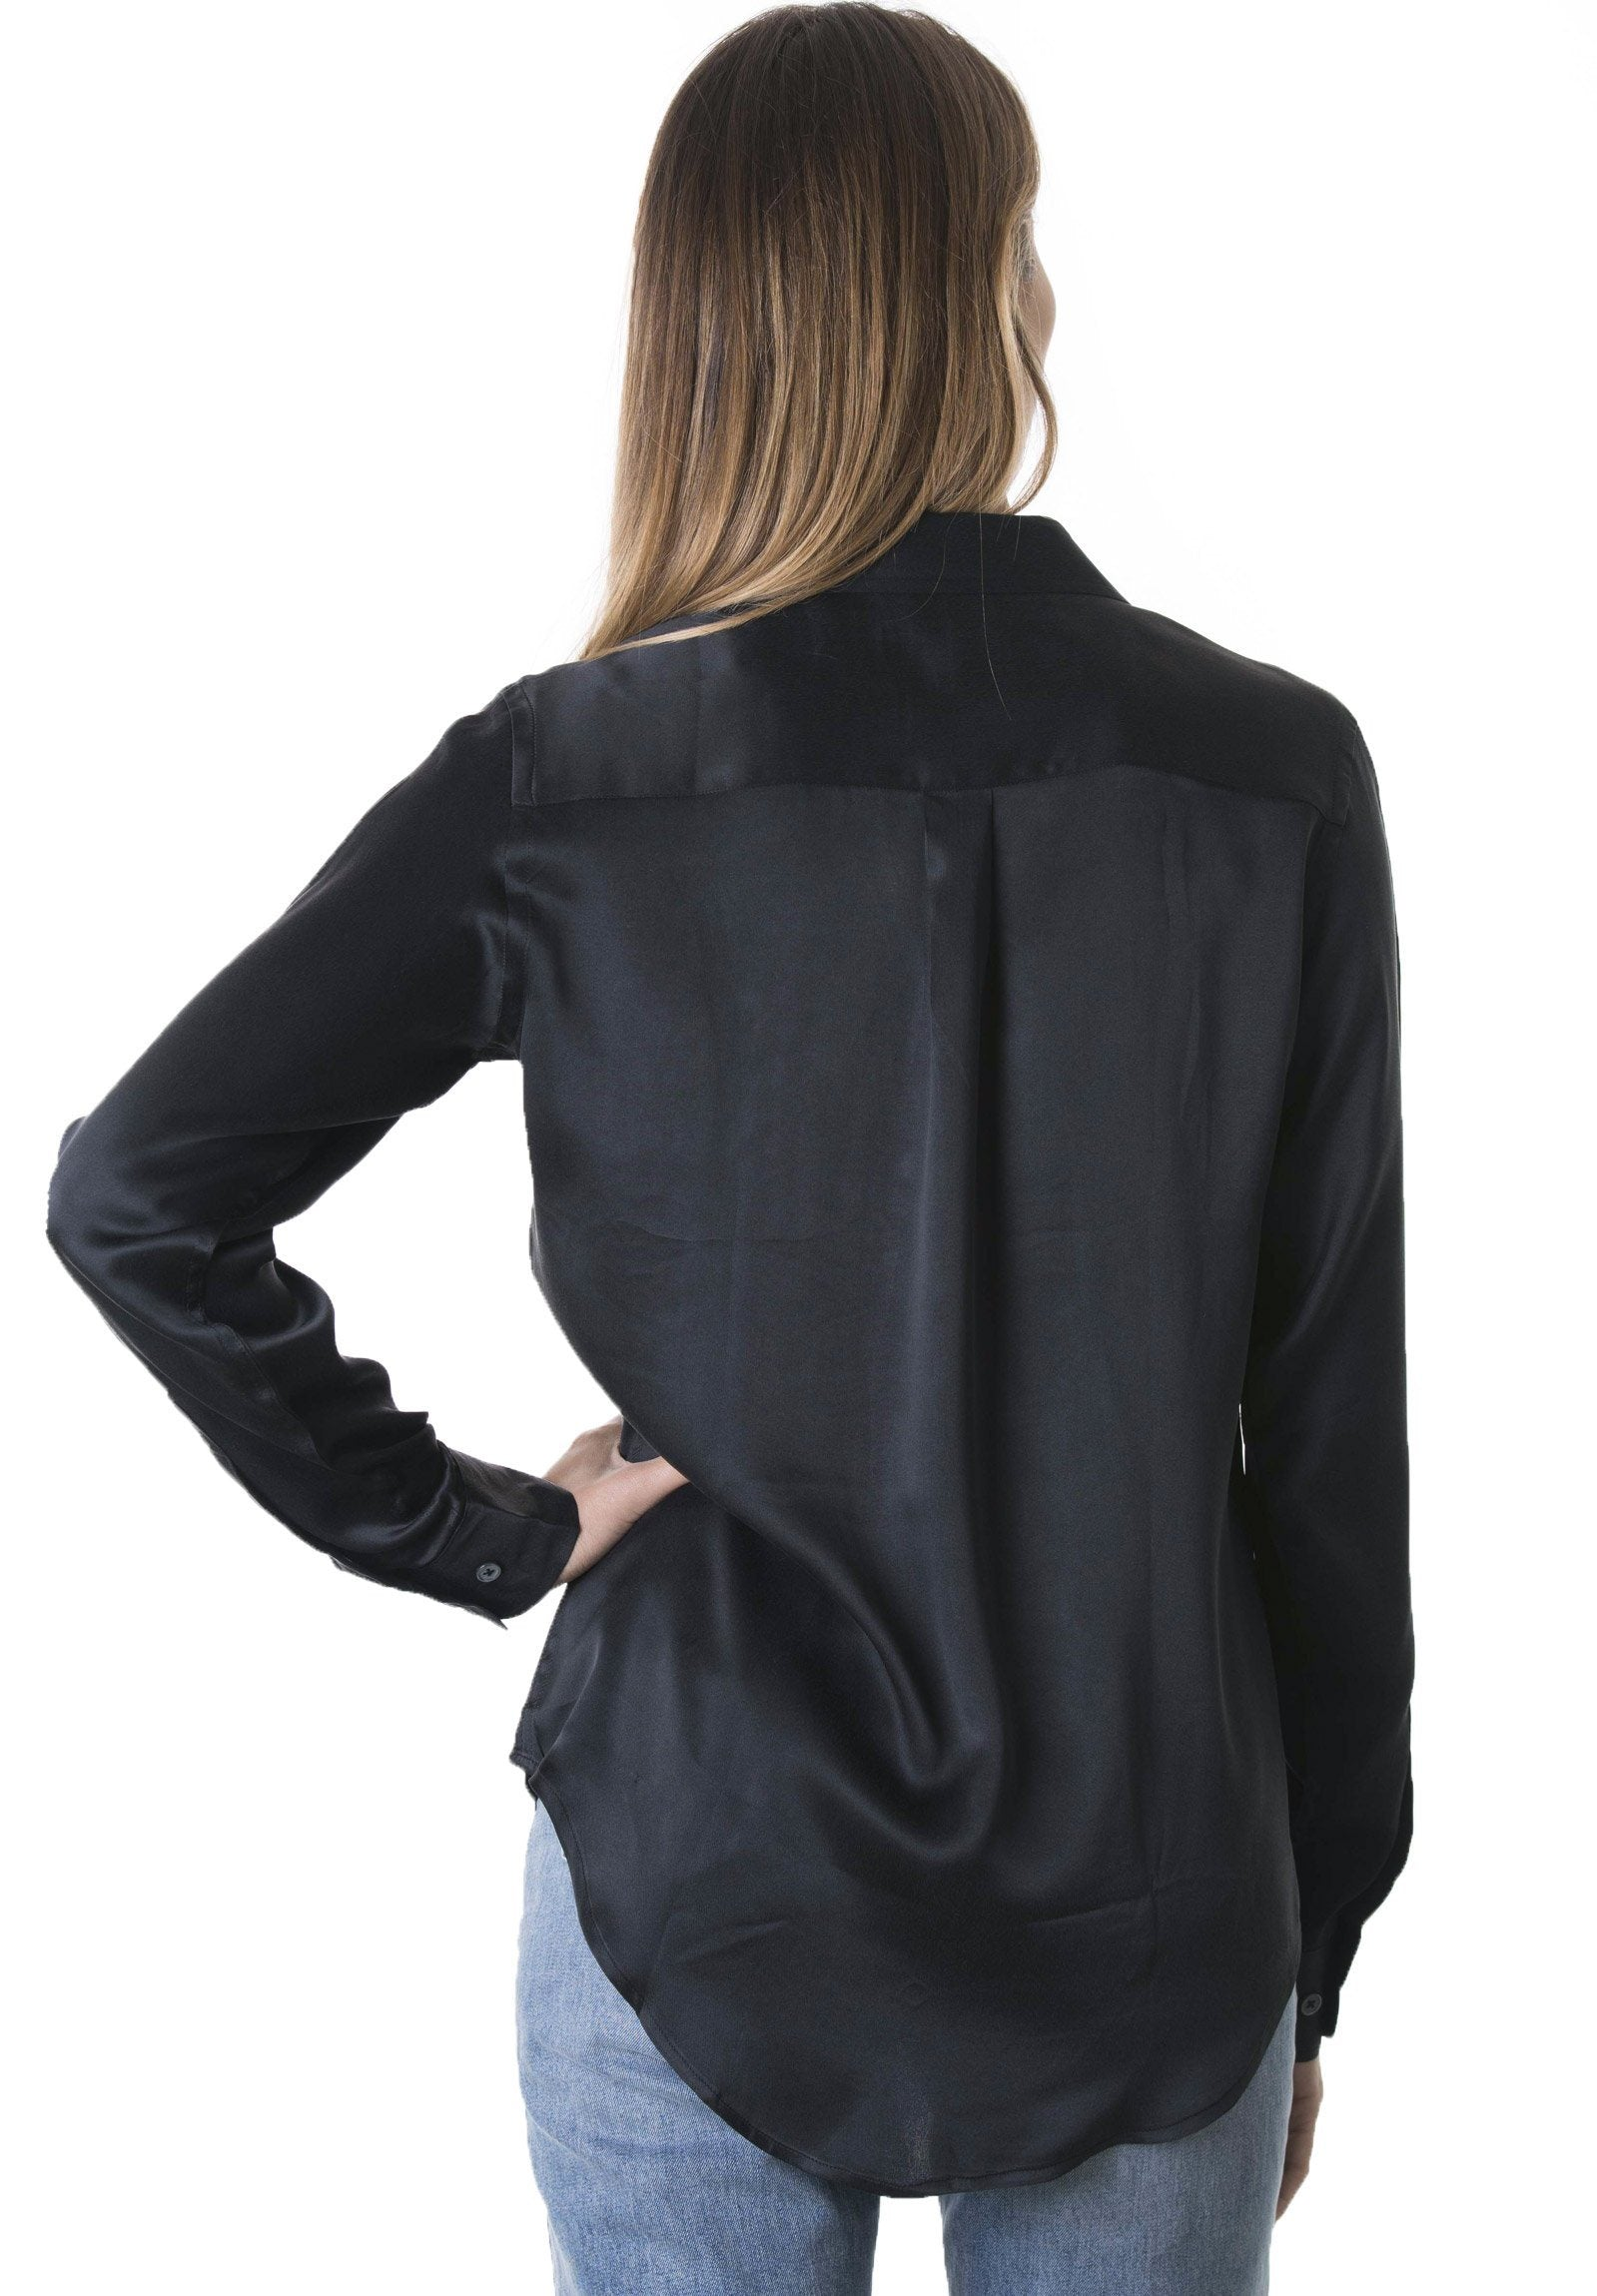 Satin Black, Pure Charmeuse Silk Shirt